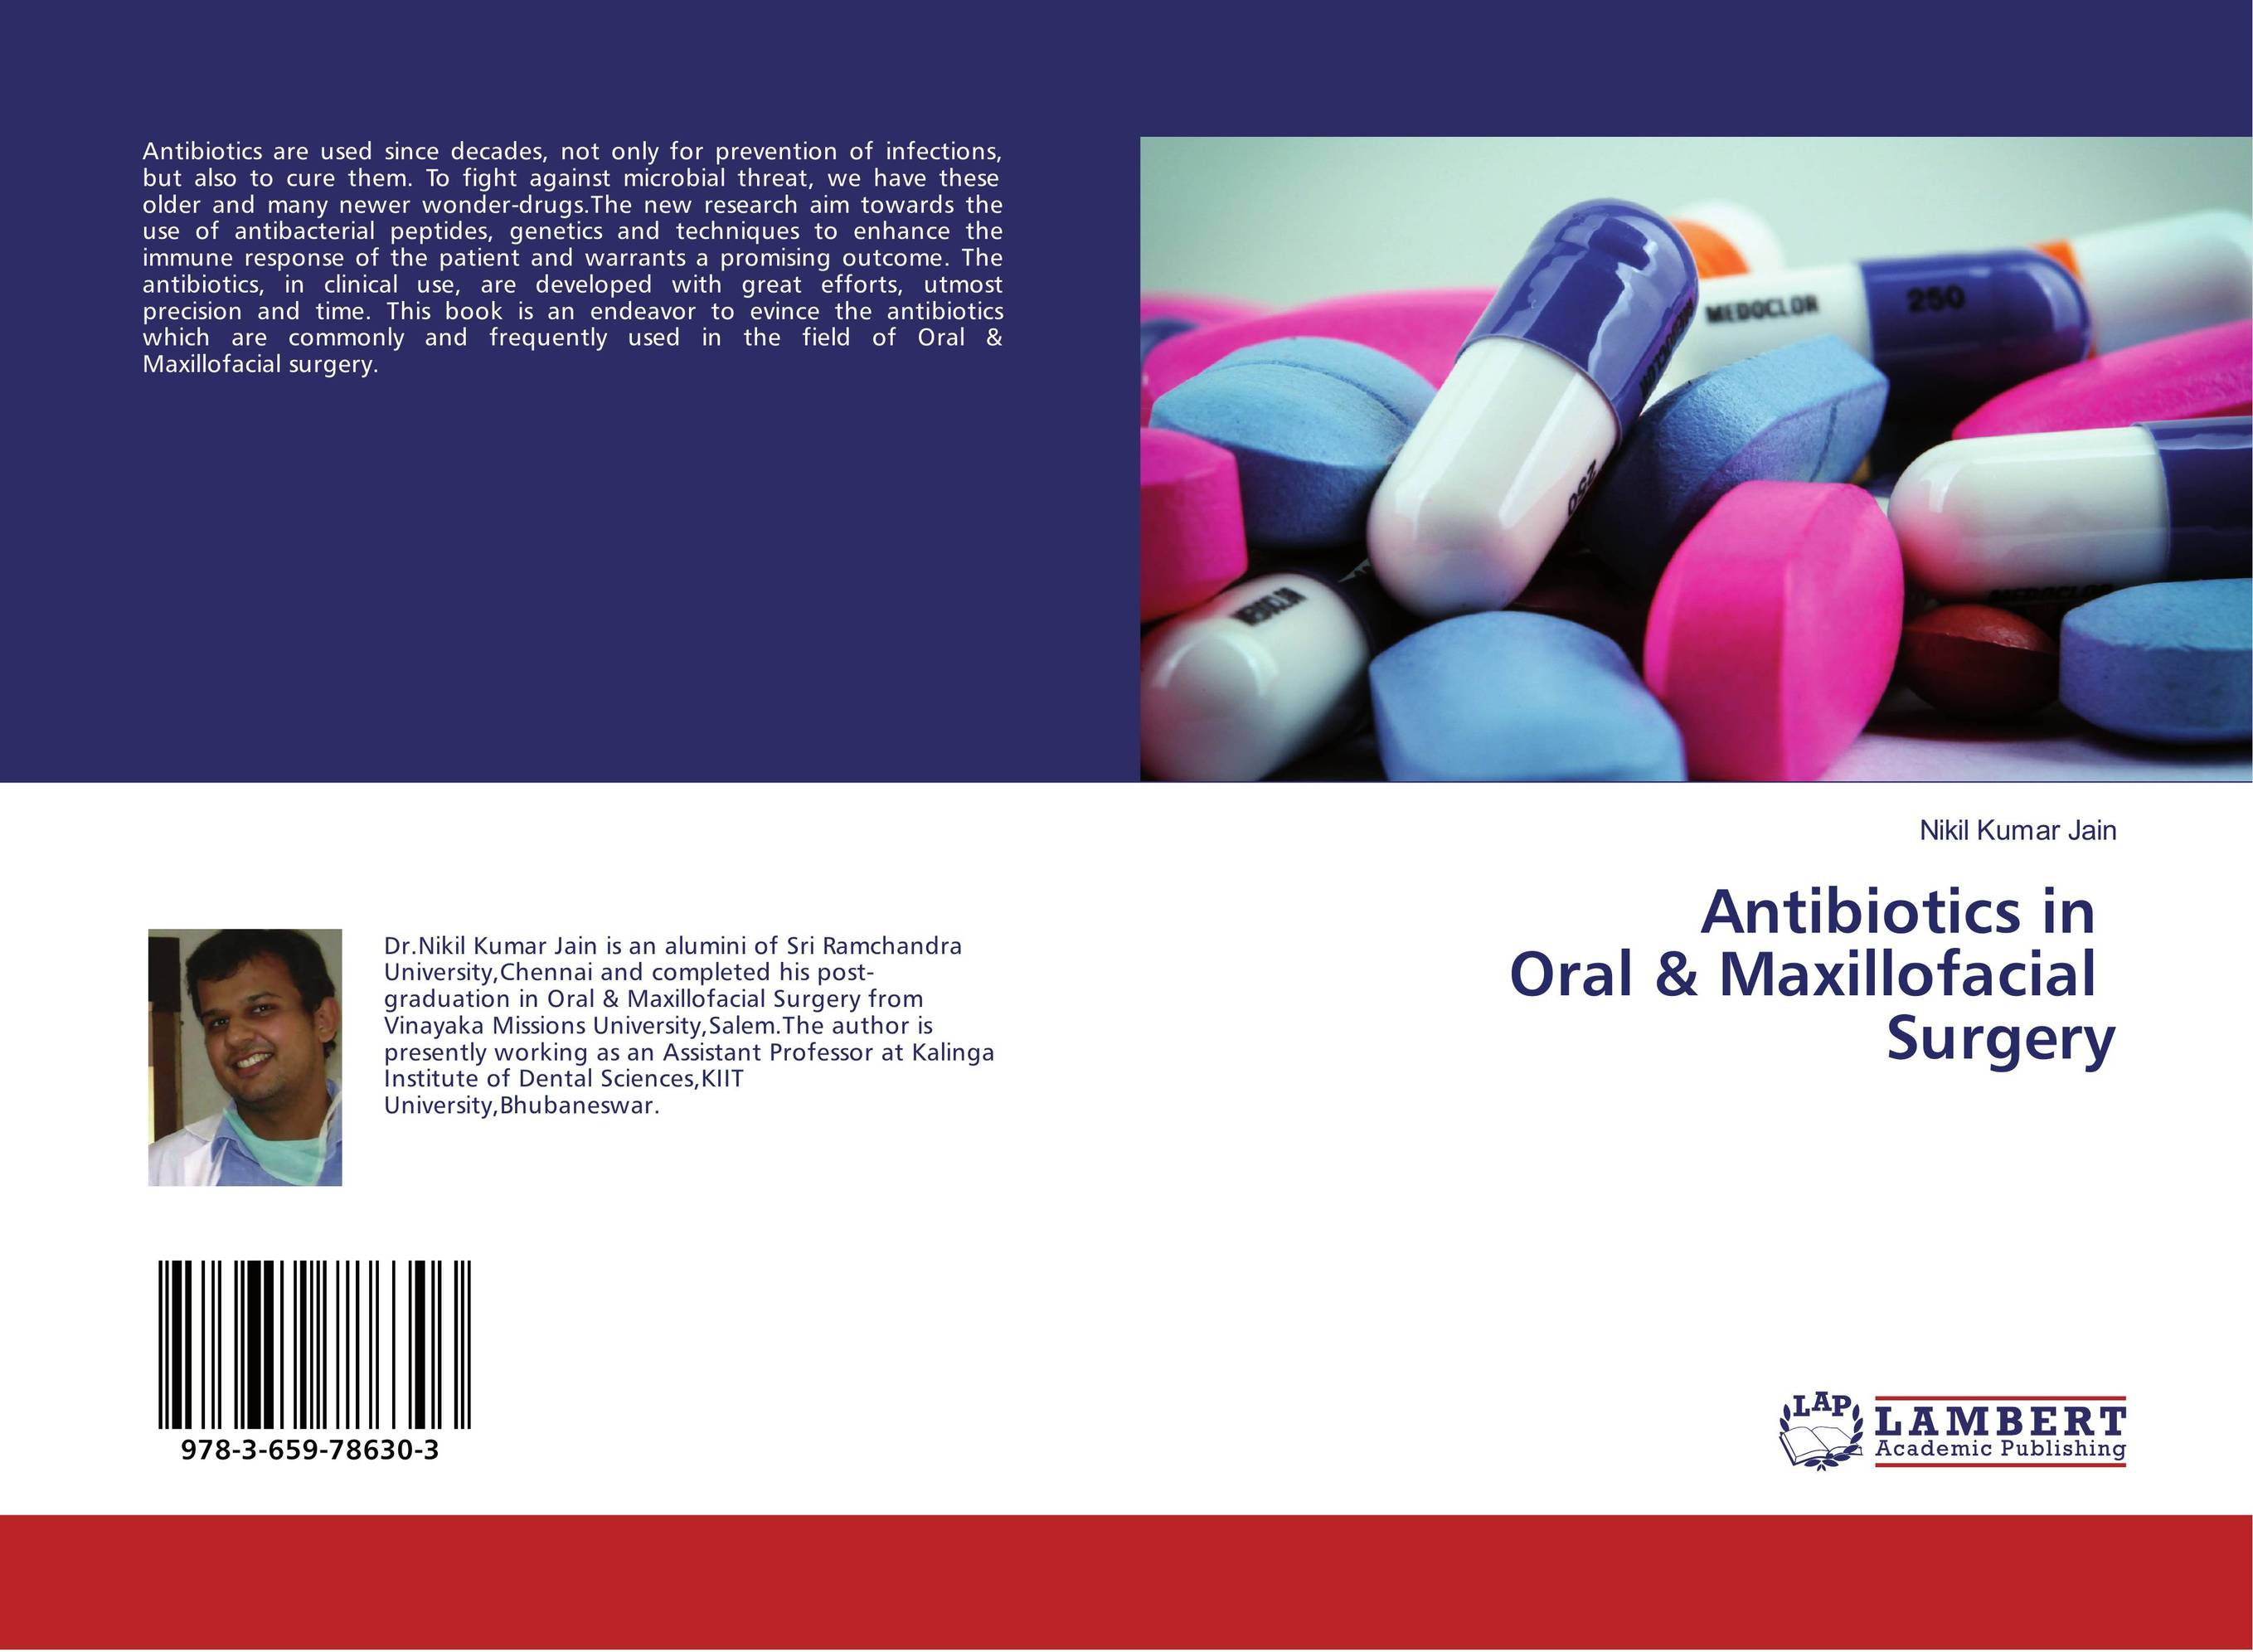 Antibiotics in Oral & Maxillofacial Surgery 12608 cmam dental26 teaching practice model of oral surgery oral surgery